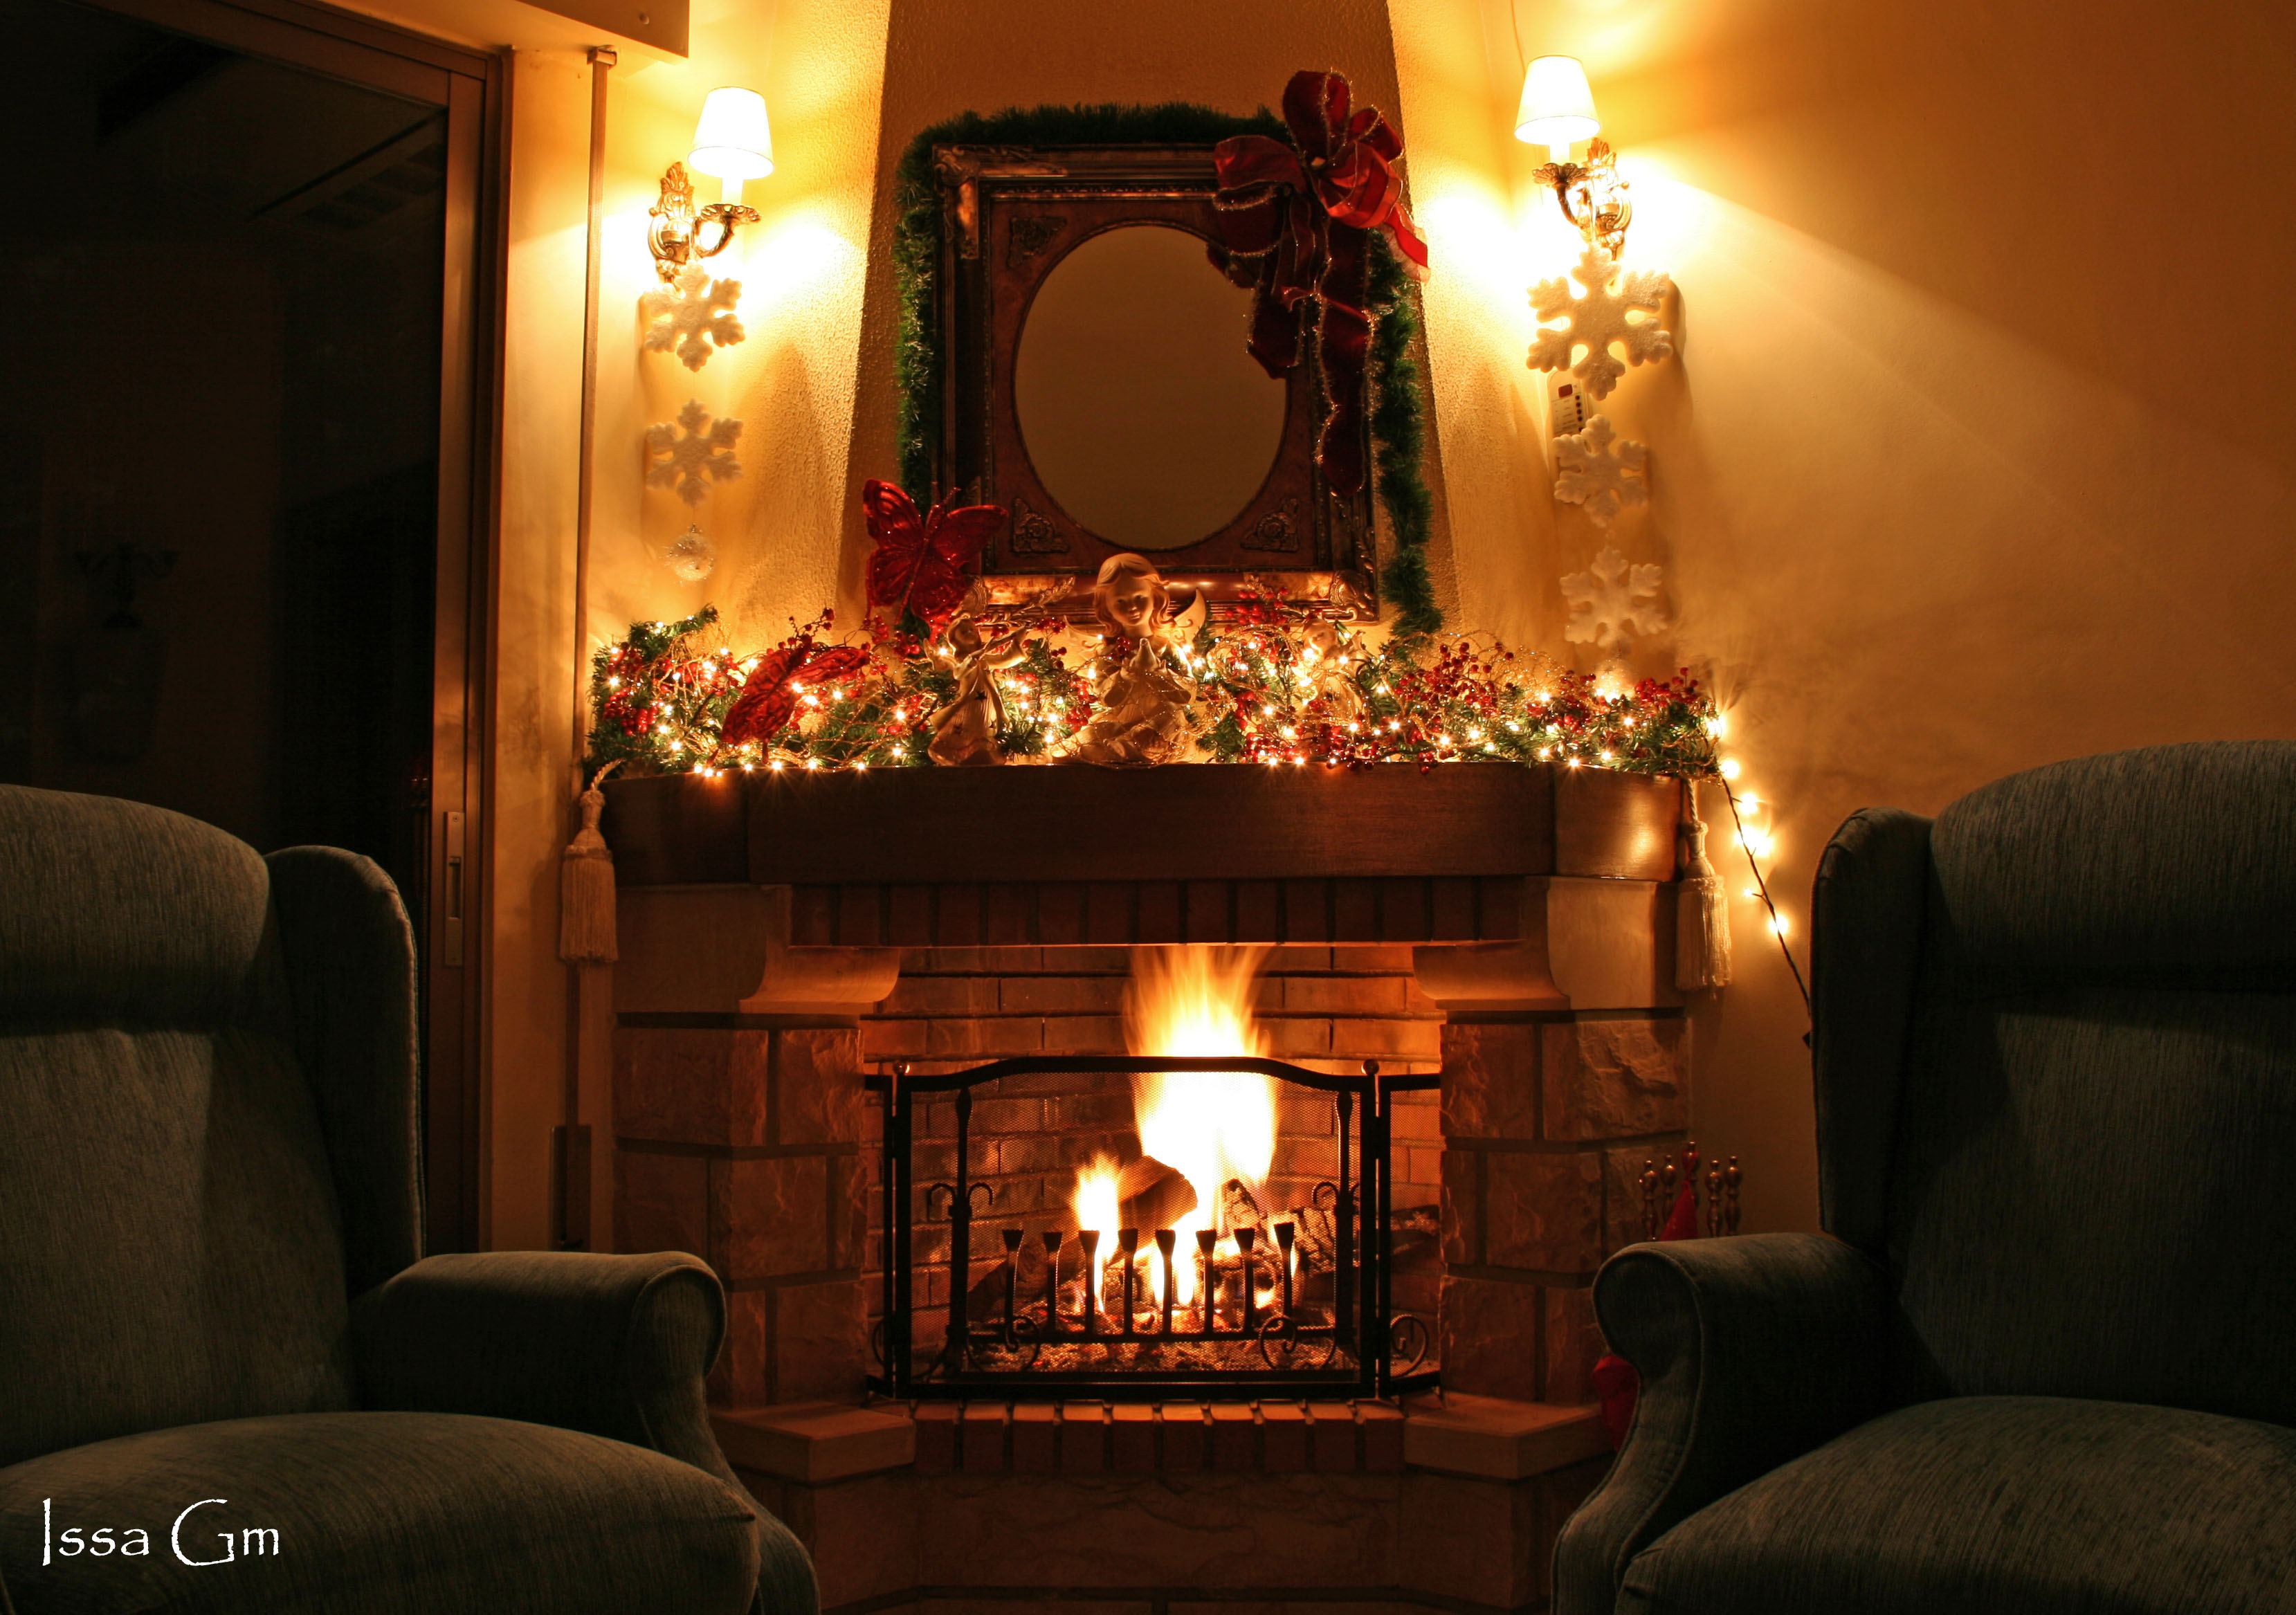 Christmas Fireplace Search Results CLARA LAURETYA 3318x2334